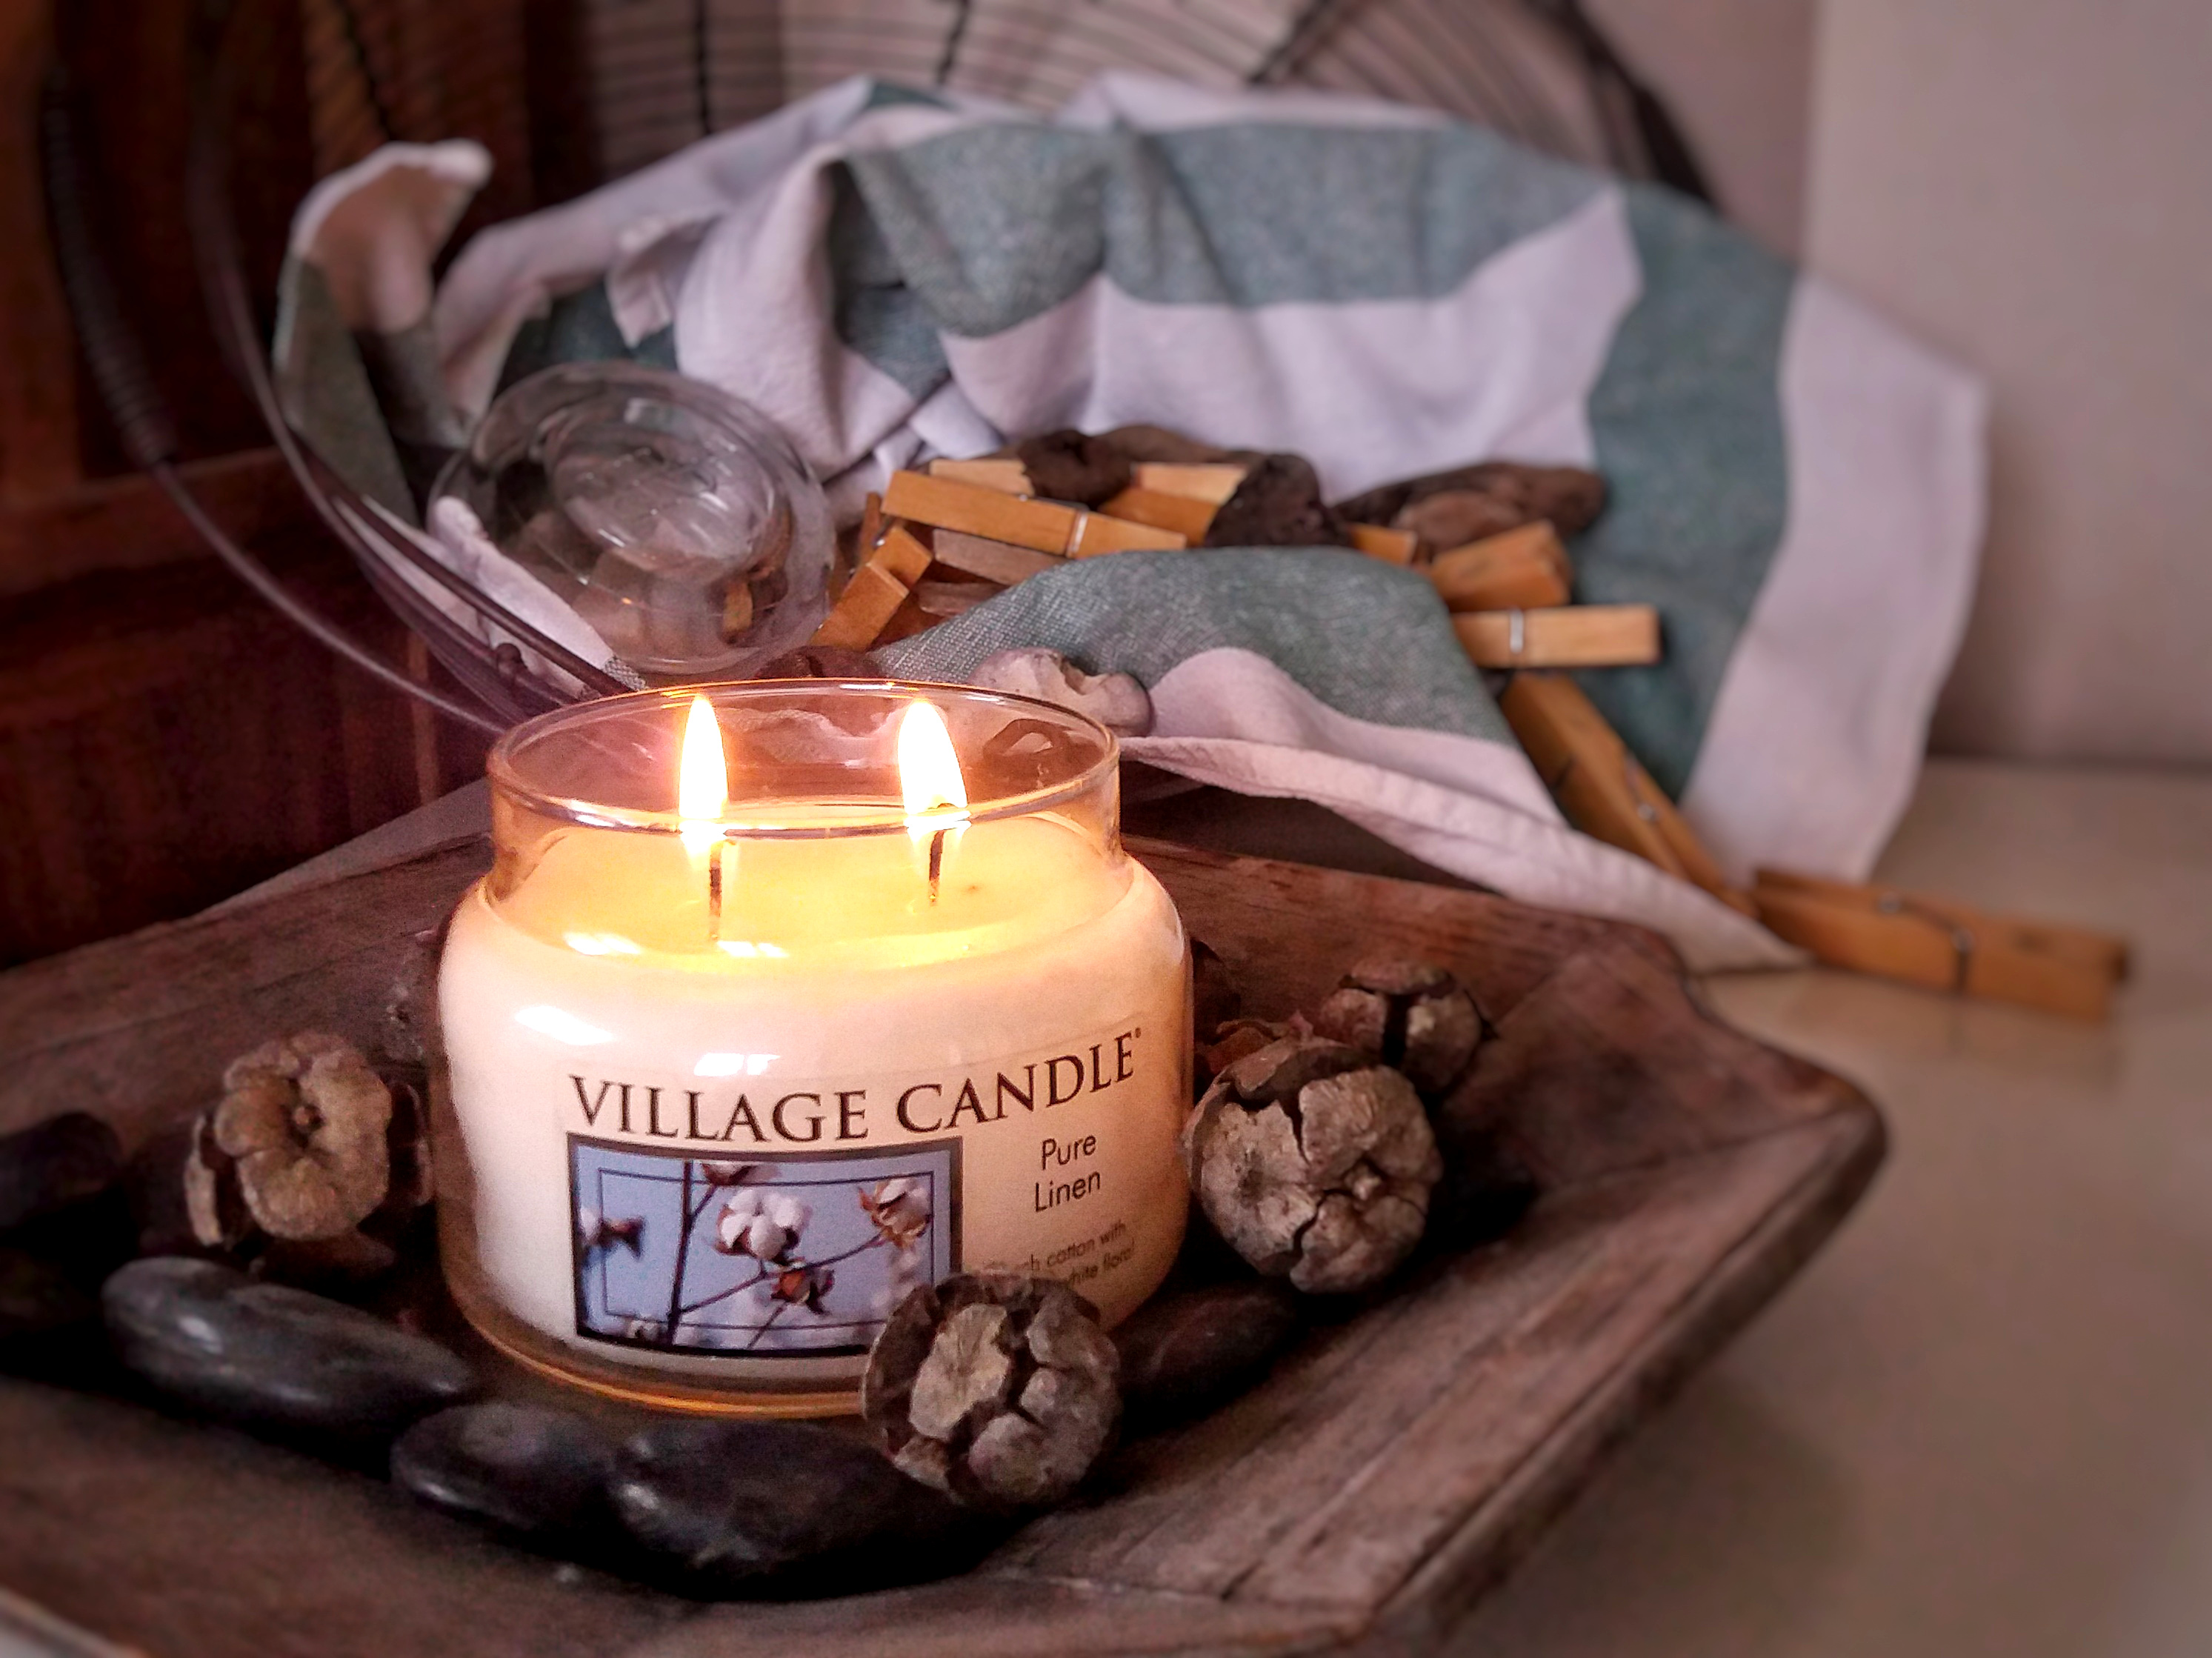 Village Candle? Ano!